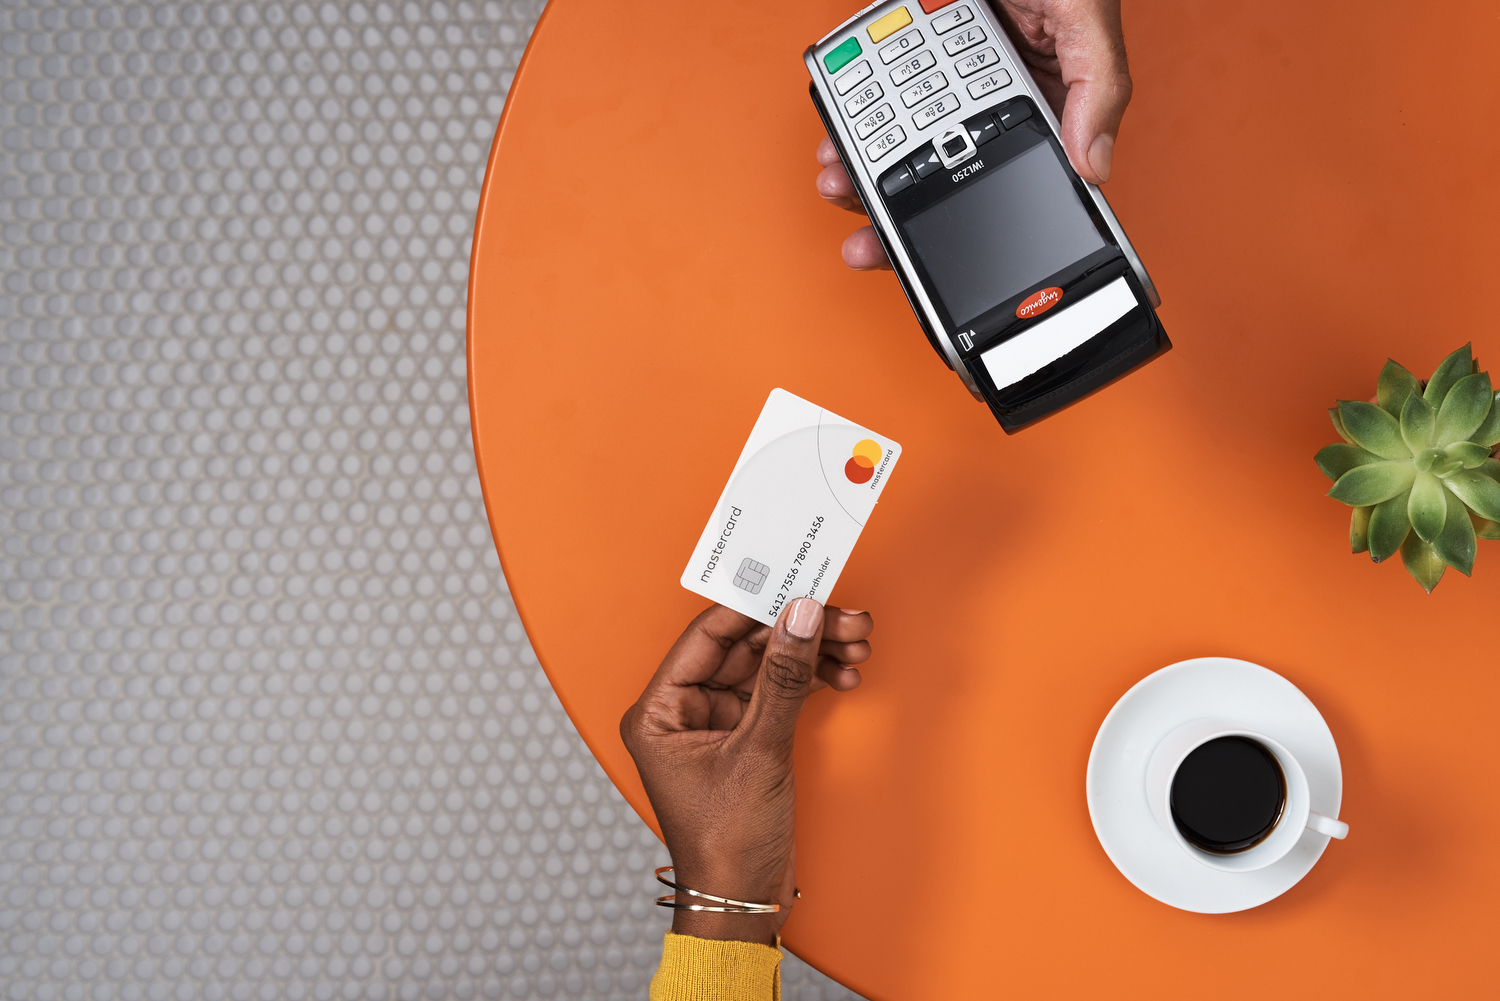 MasterCard | Payments Photo by Bryan Derballa